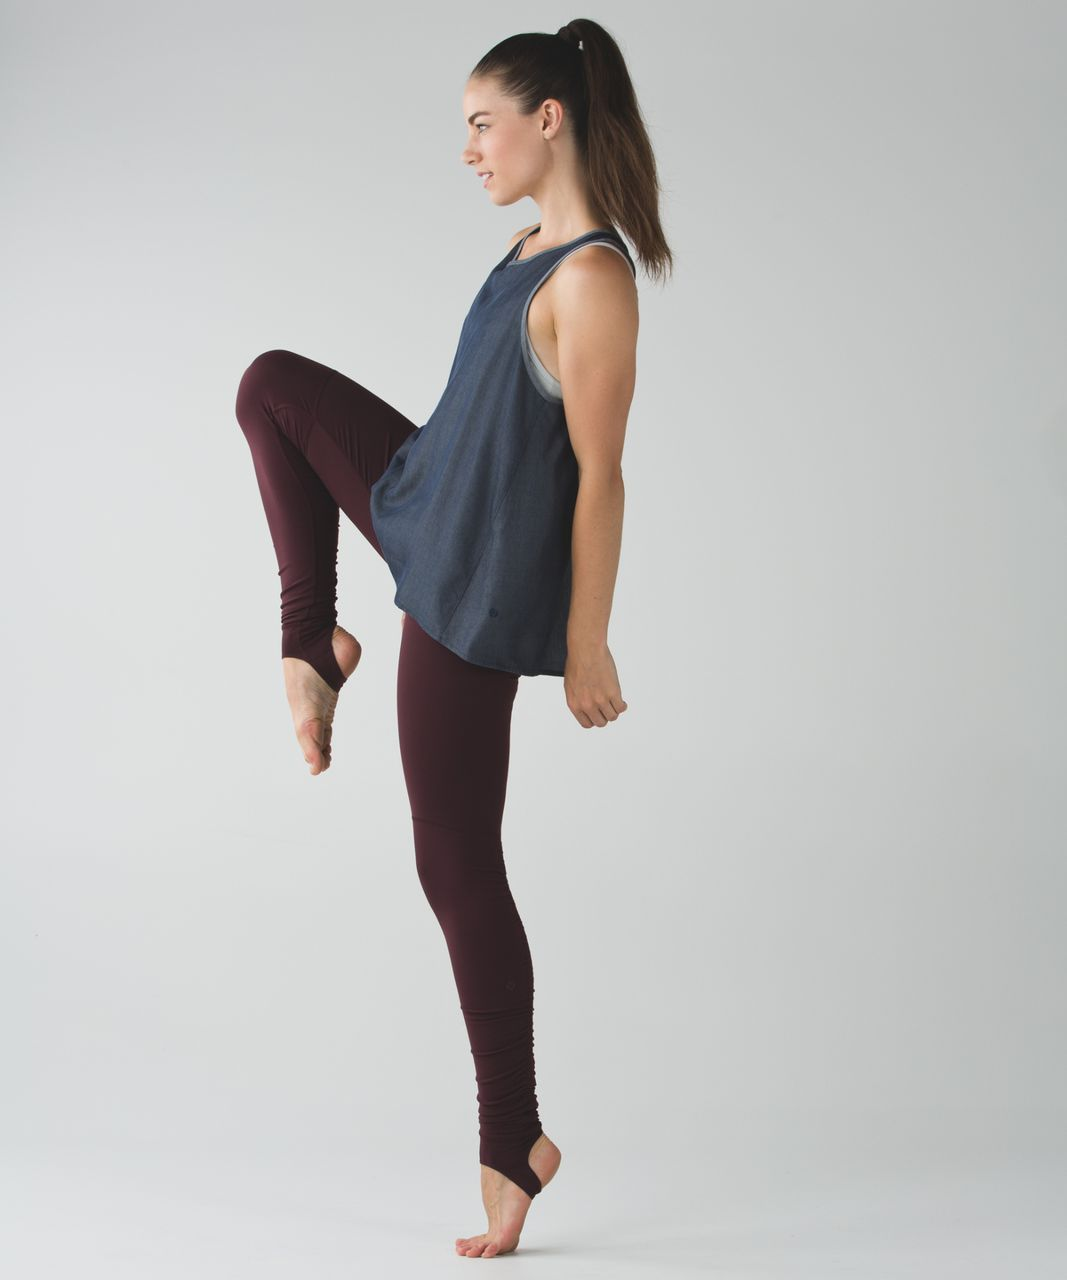 Lululemon Wunder Under Pant (Stirrup) - Bordeaux Drama